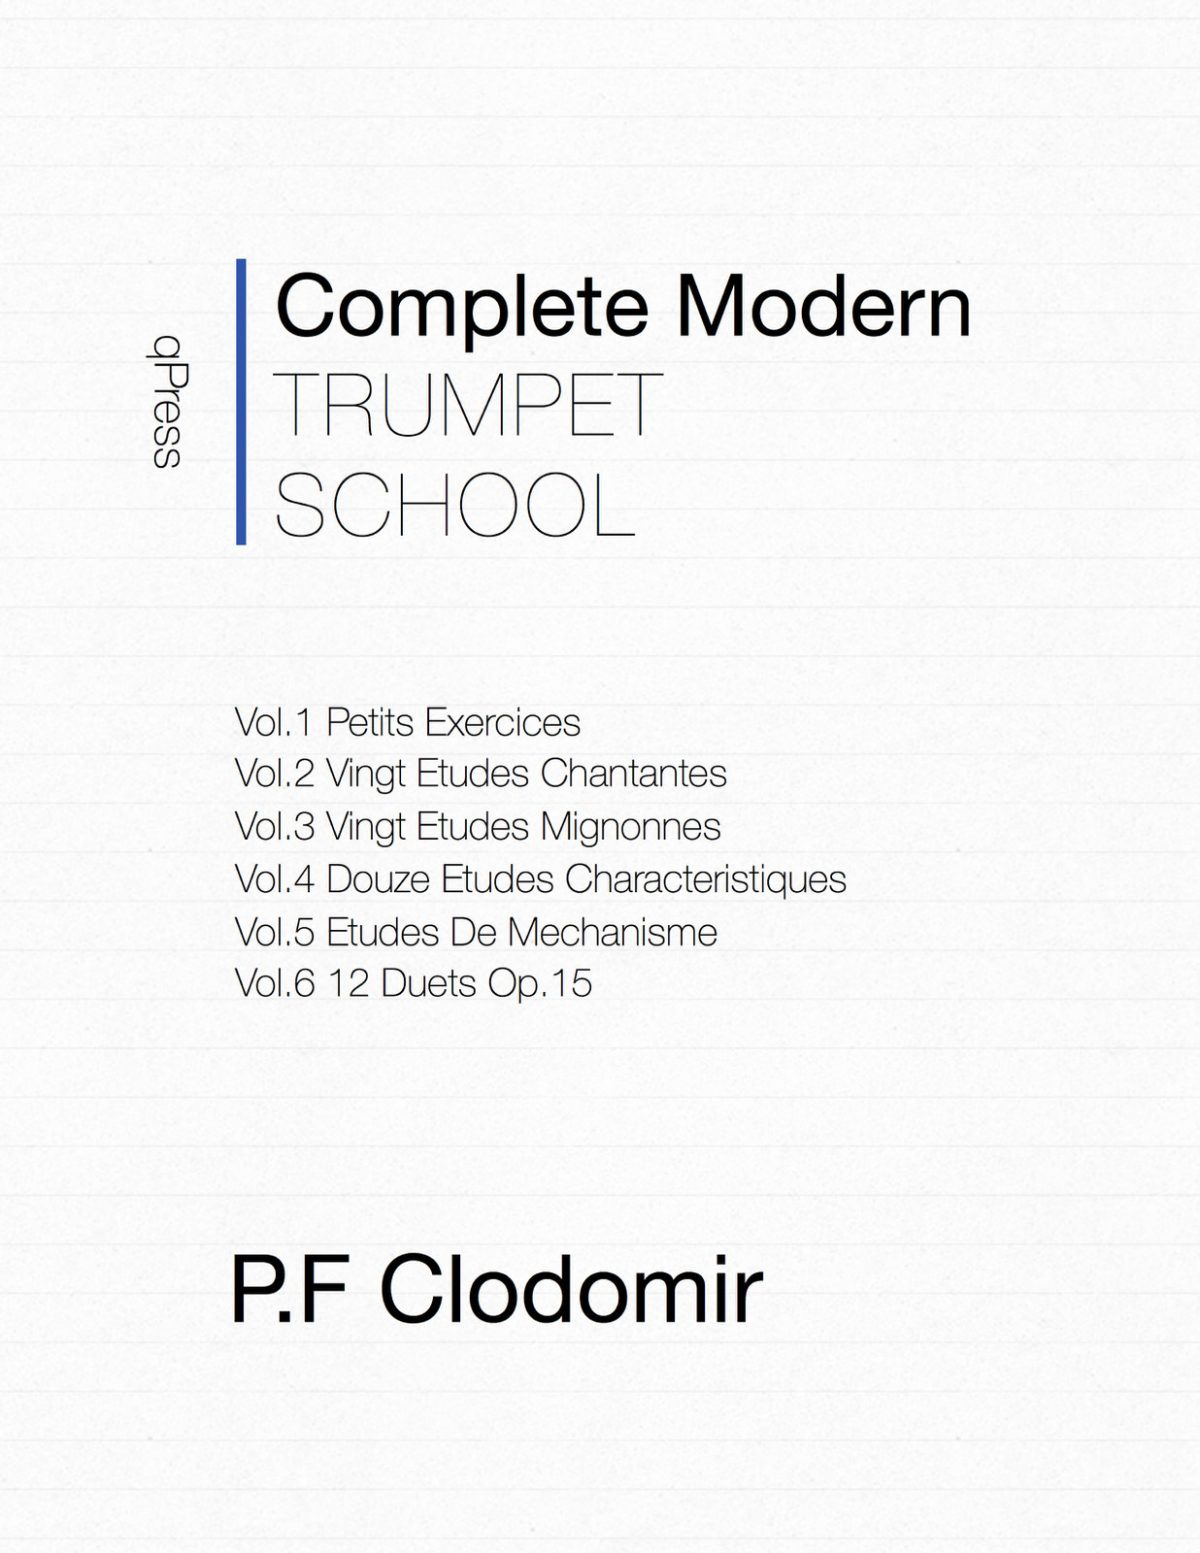 complete-modern-school-featured